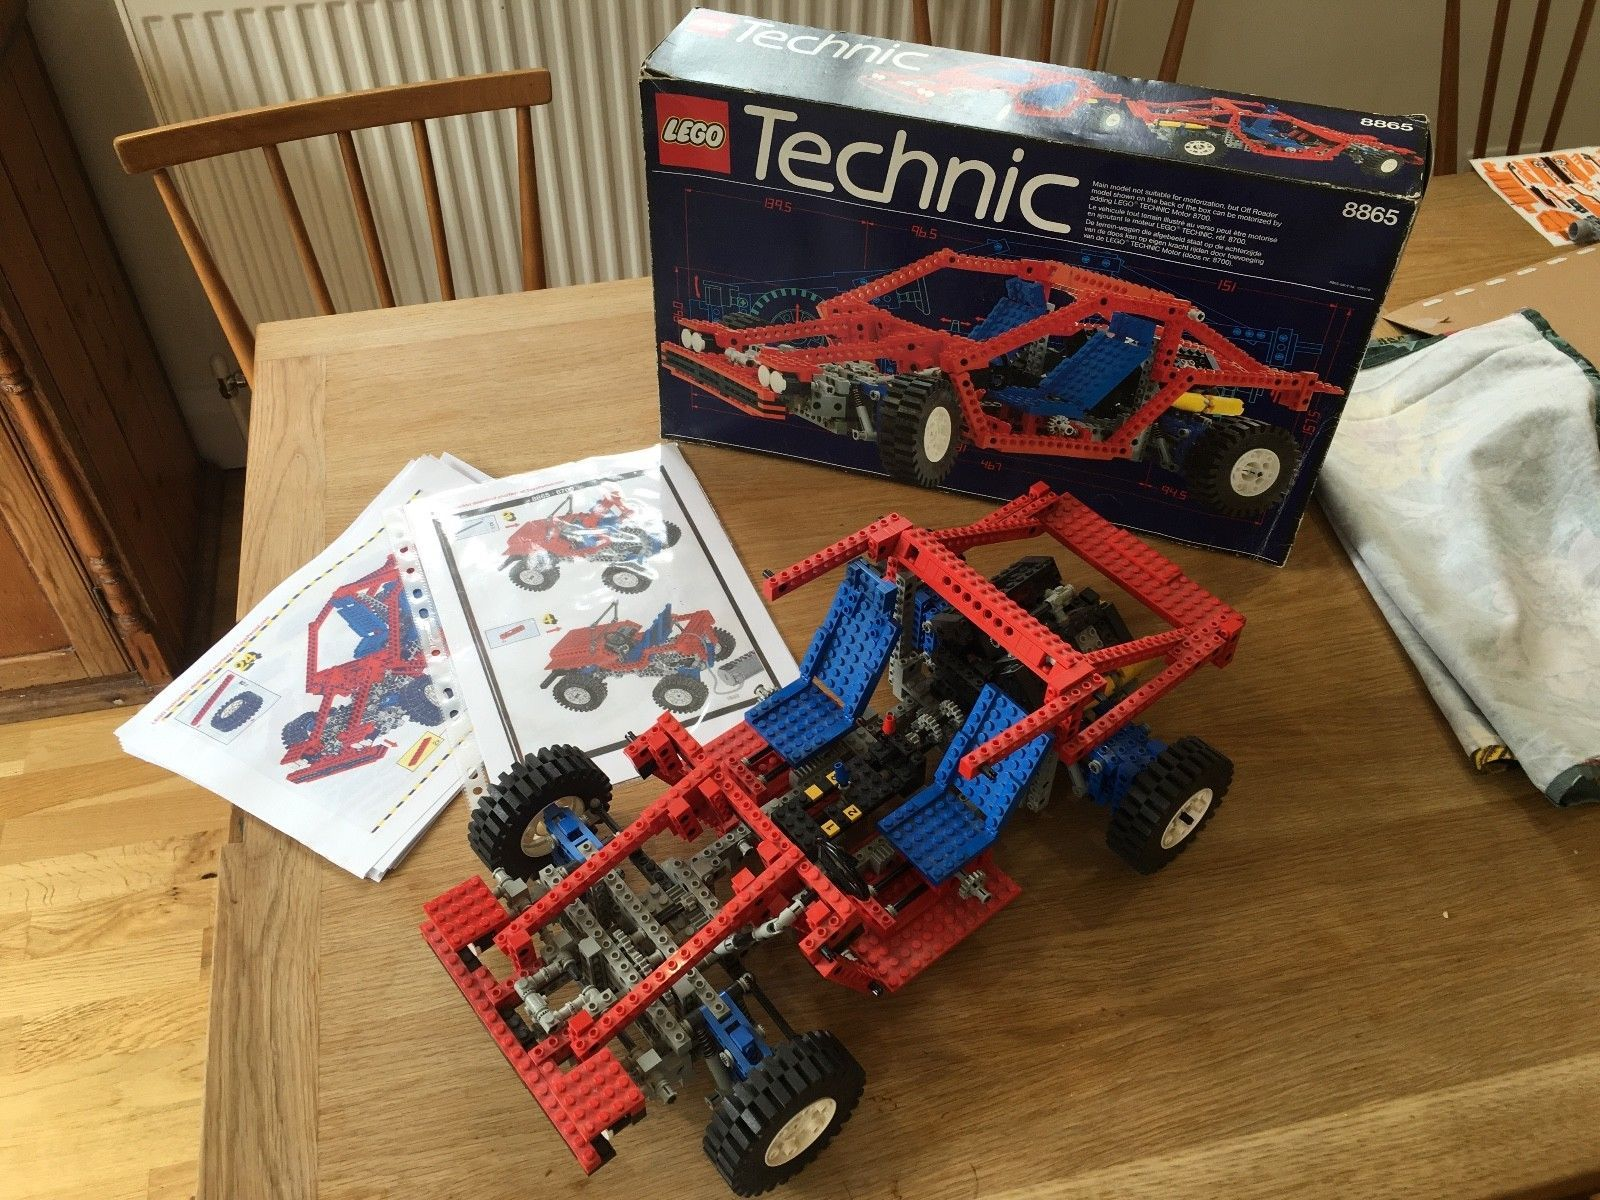 Technic Lego car set 8865, which I was given for Christmas